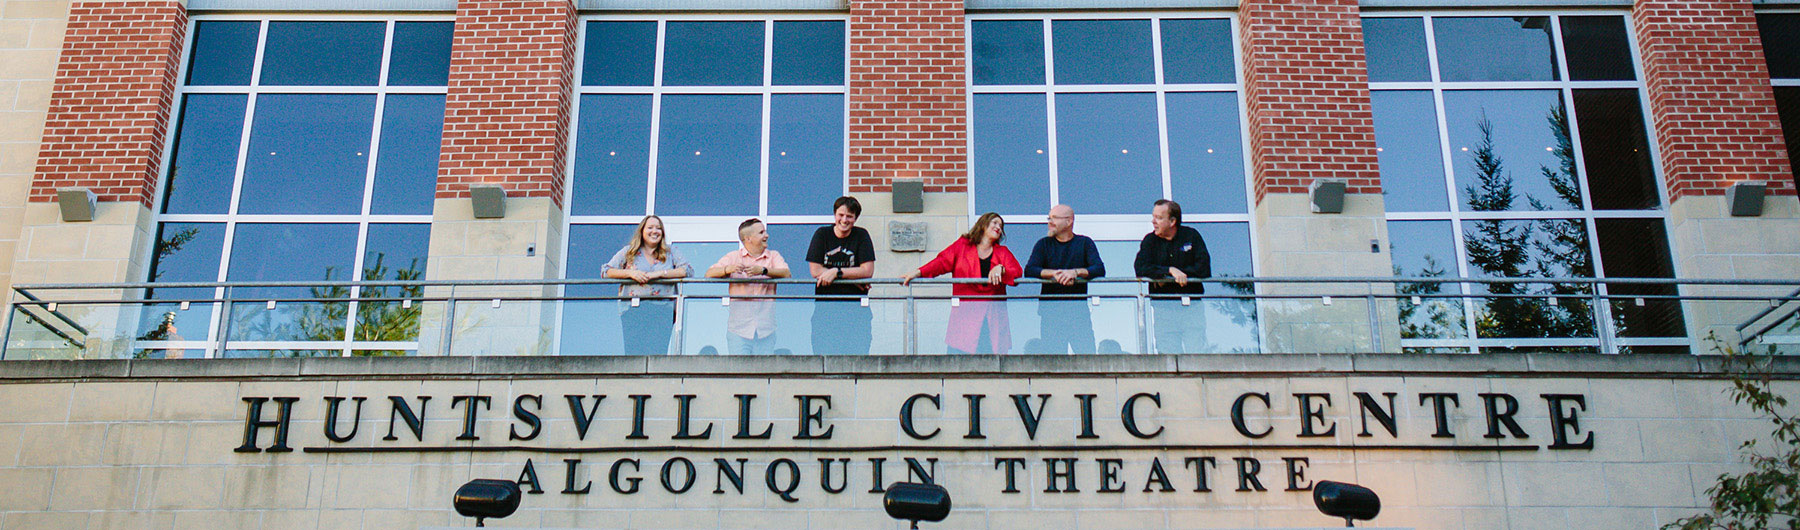 image of theatre staff standing and chatting on the outdoor balcony of the Huntsville Civic Centre Algonquin Theatre